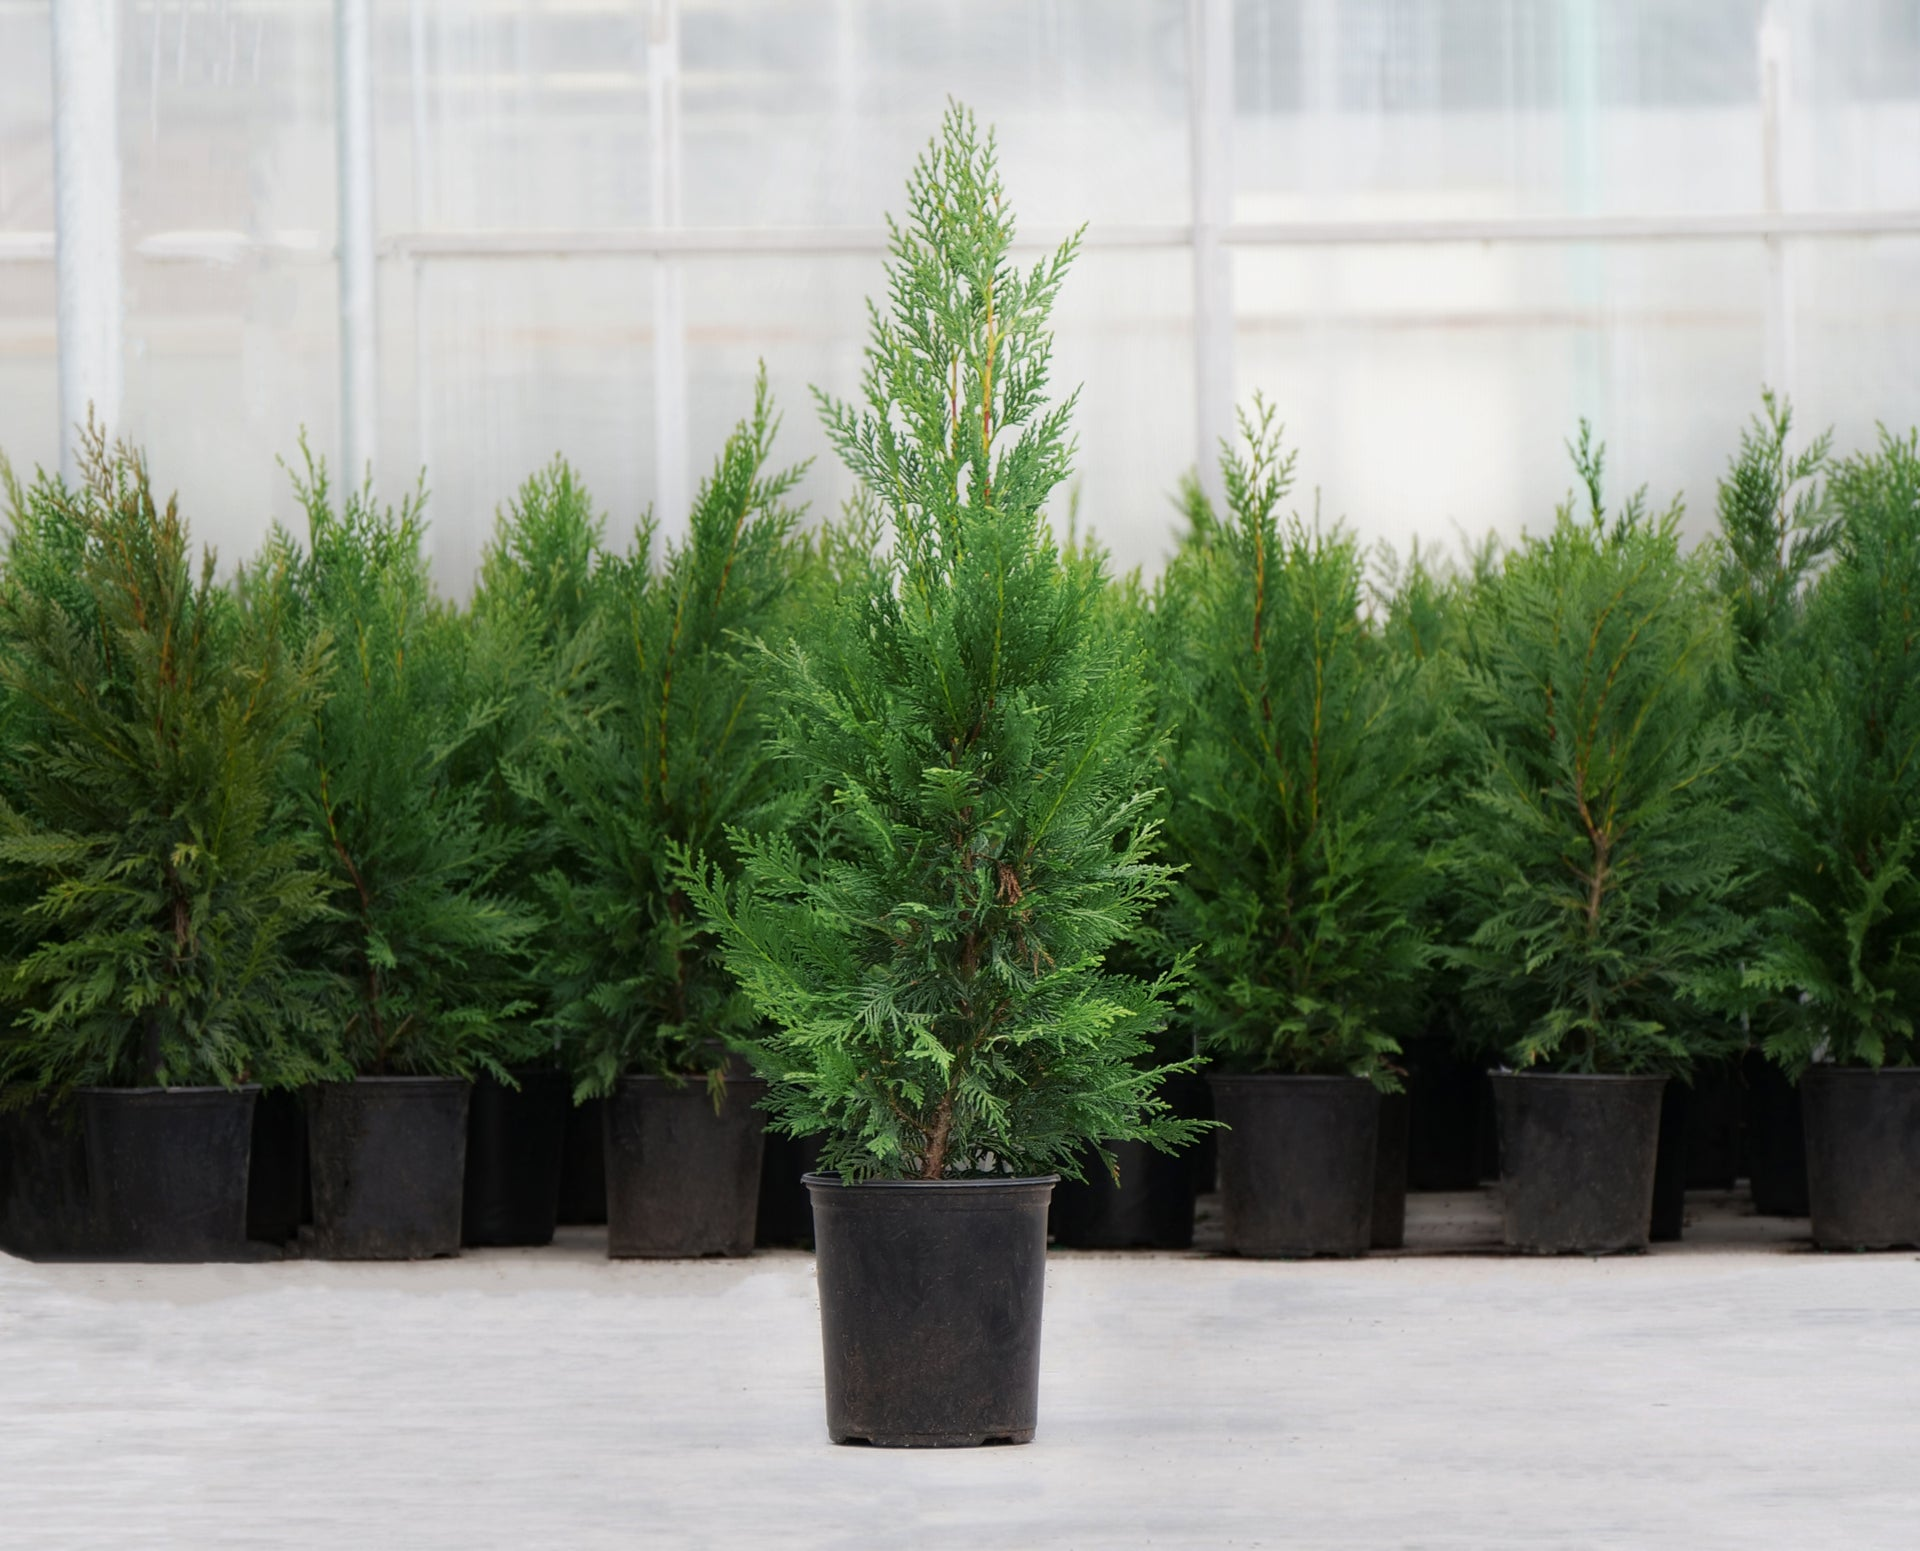 Row of potted arborvitae trees in a greenhouse